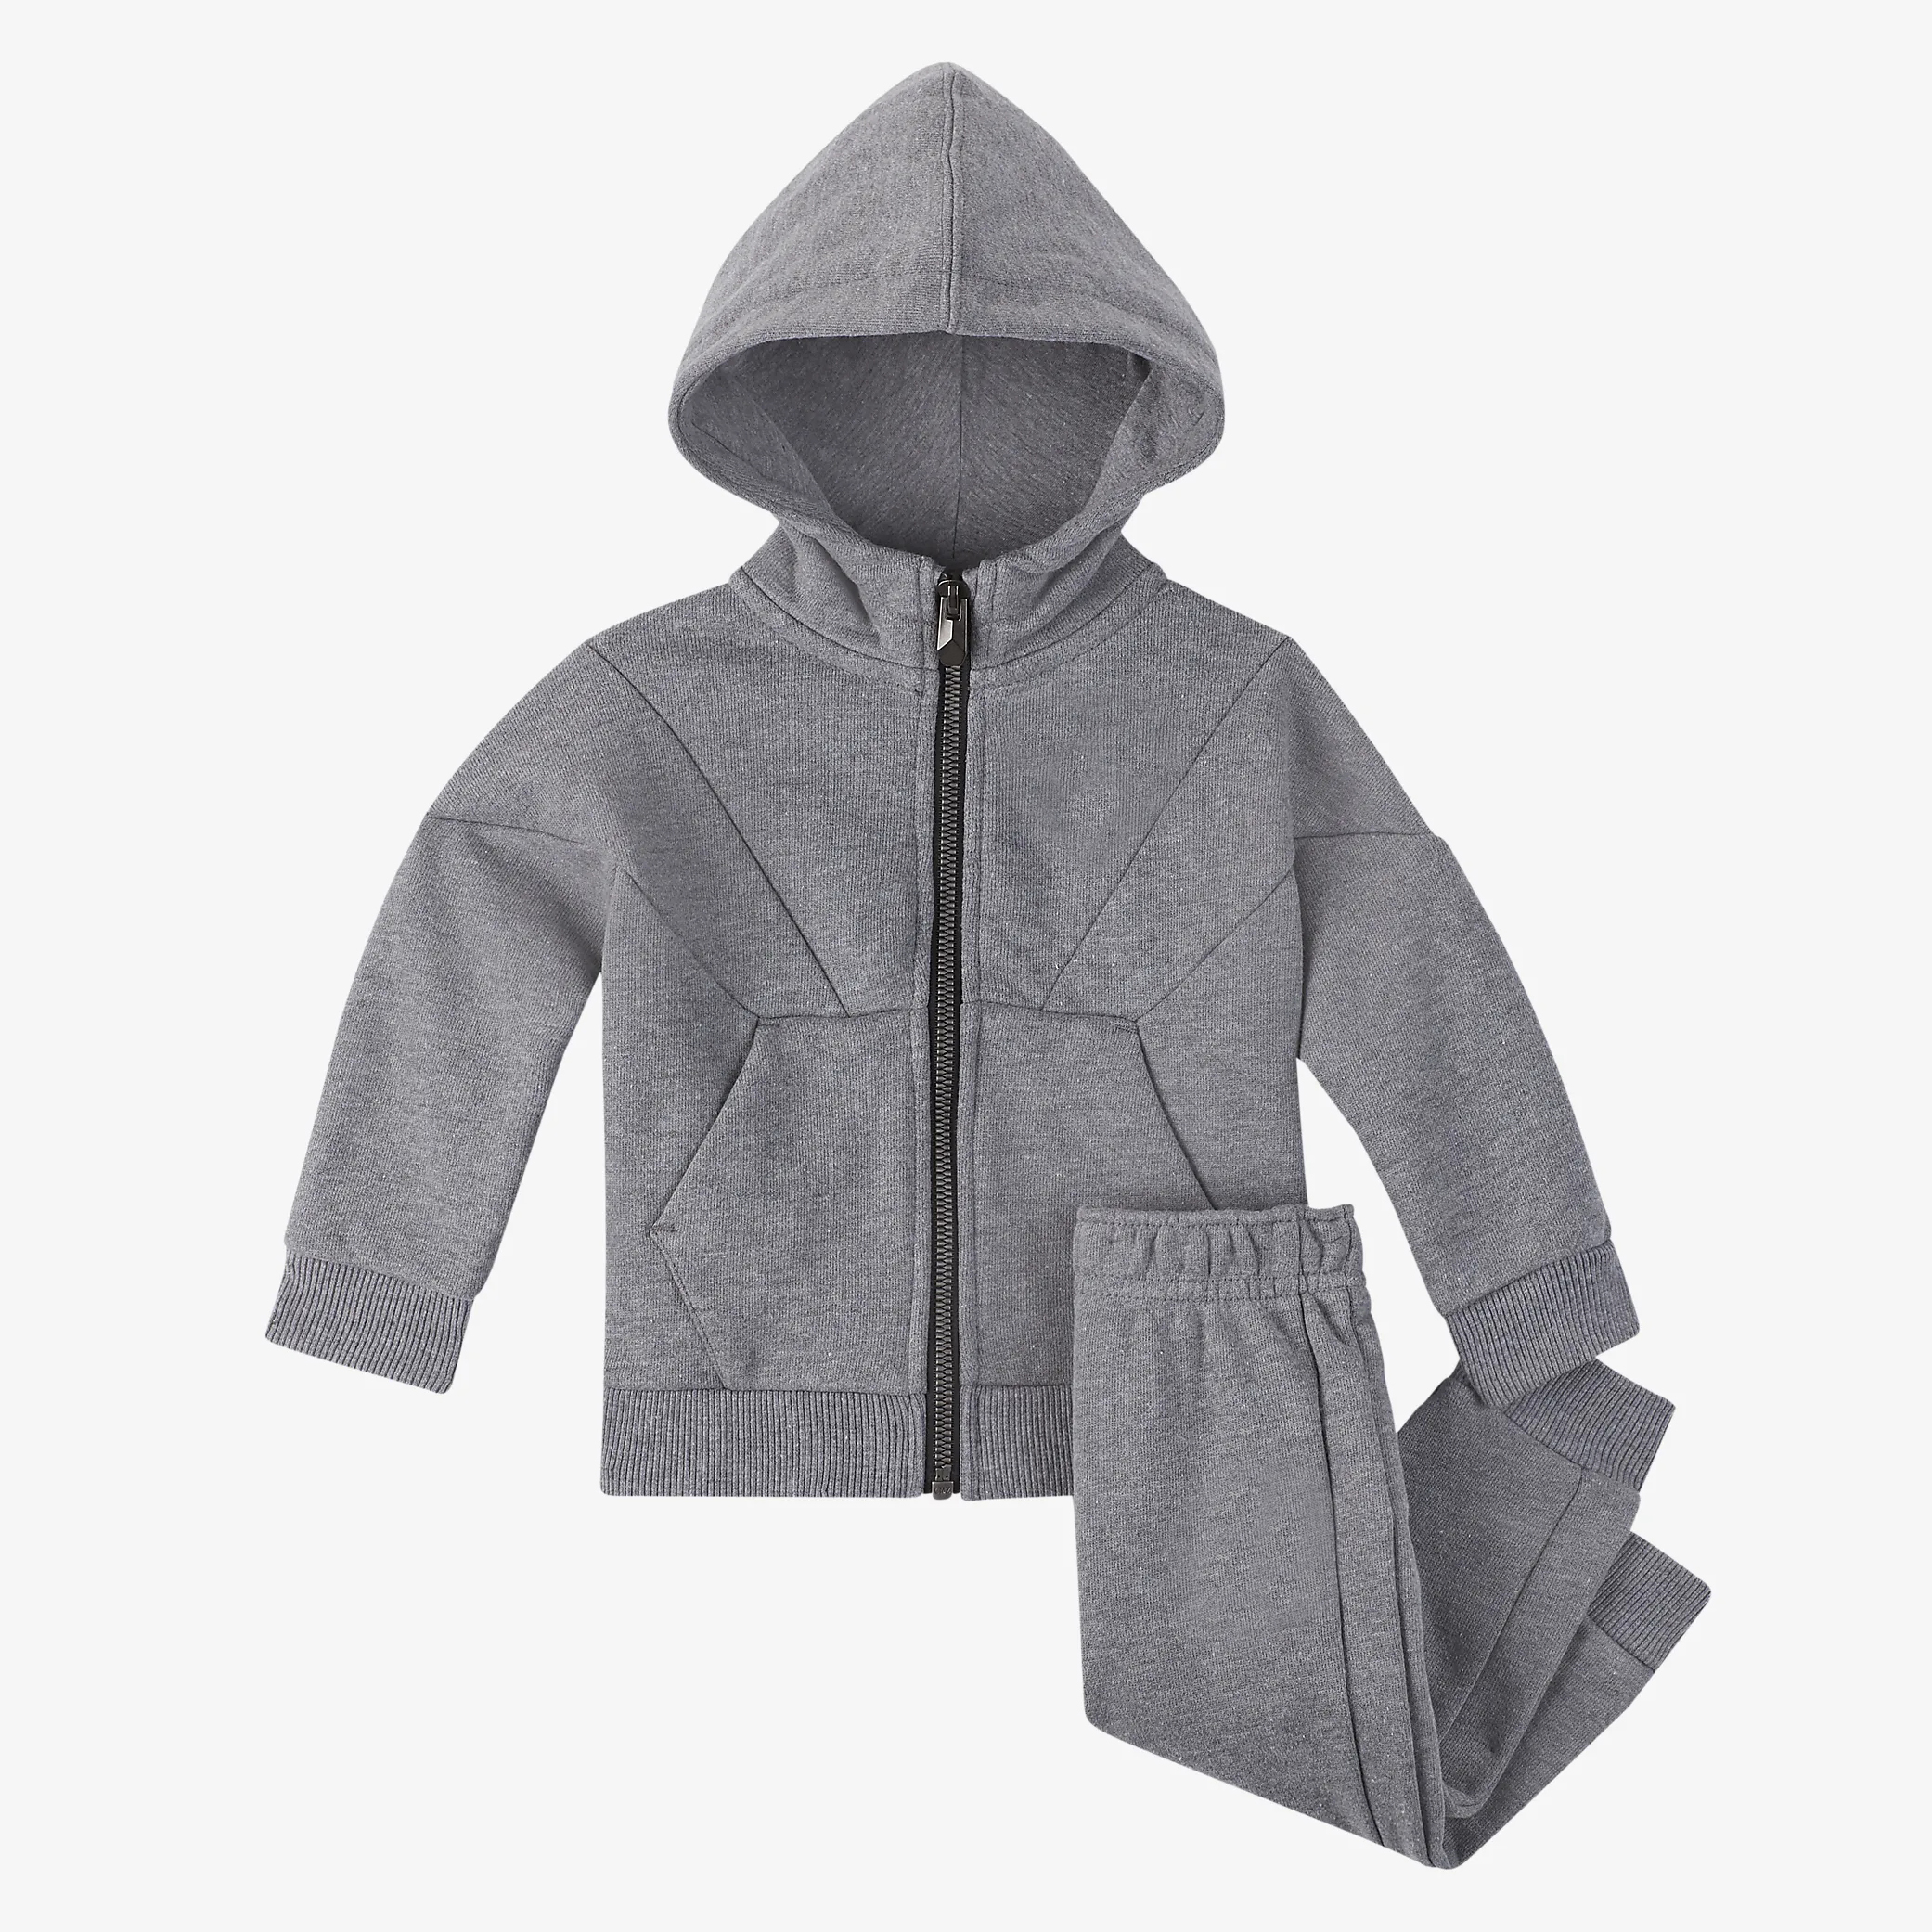 Kids clothing set high quality blank fleece terry hoodie and jogger pants 2pcs set clothing baby boys clothes